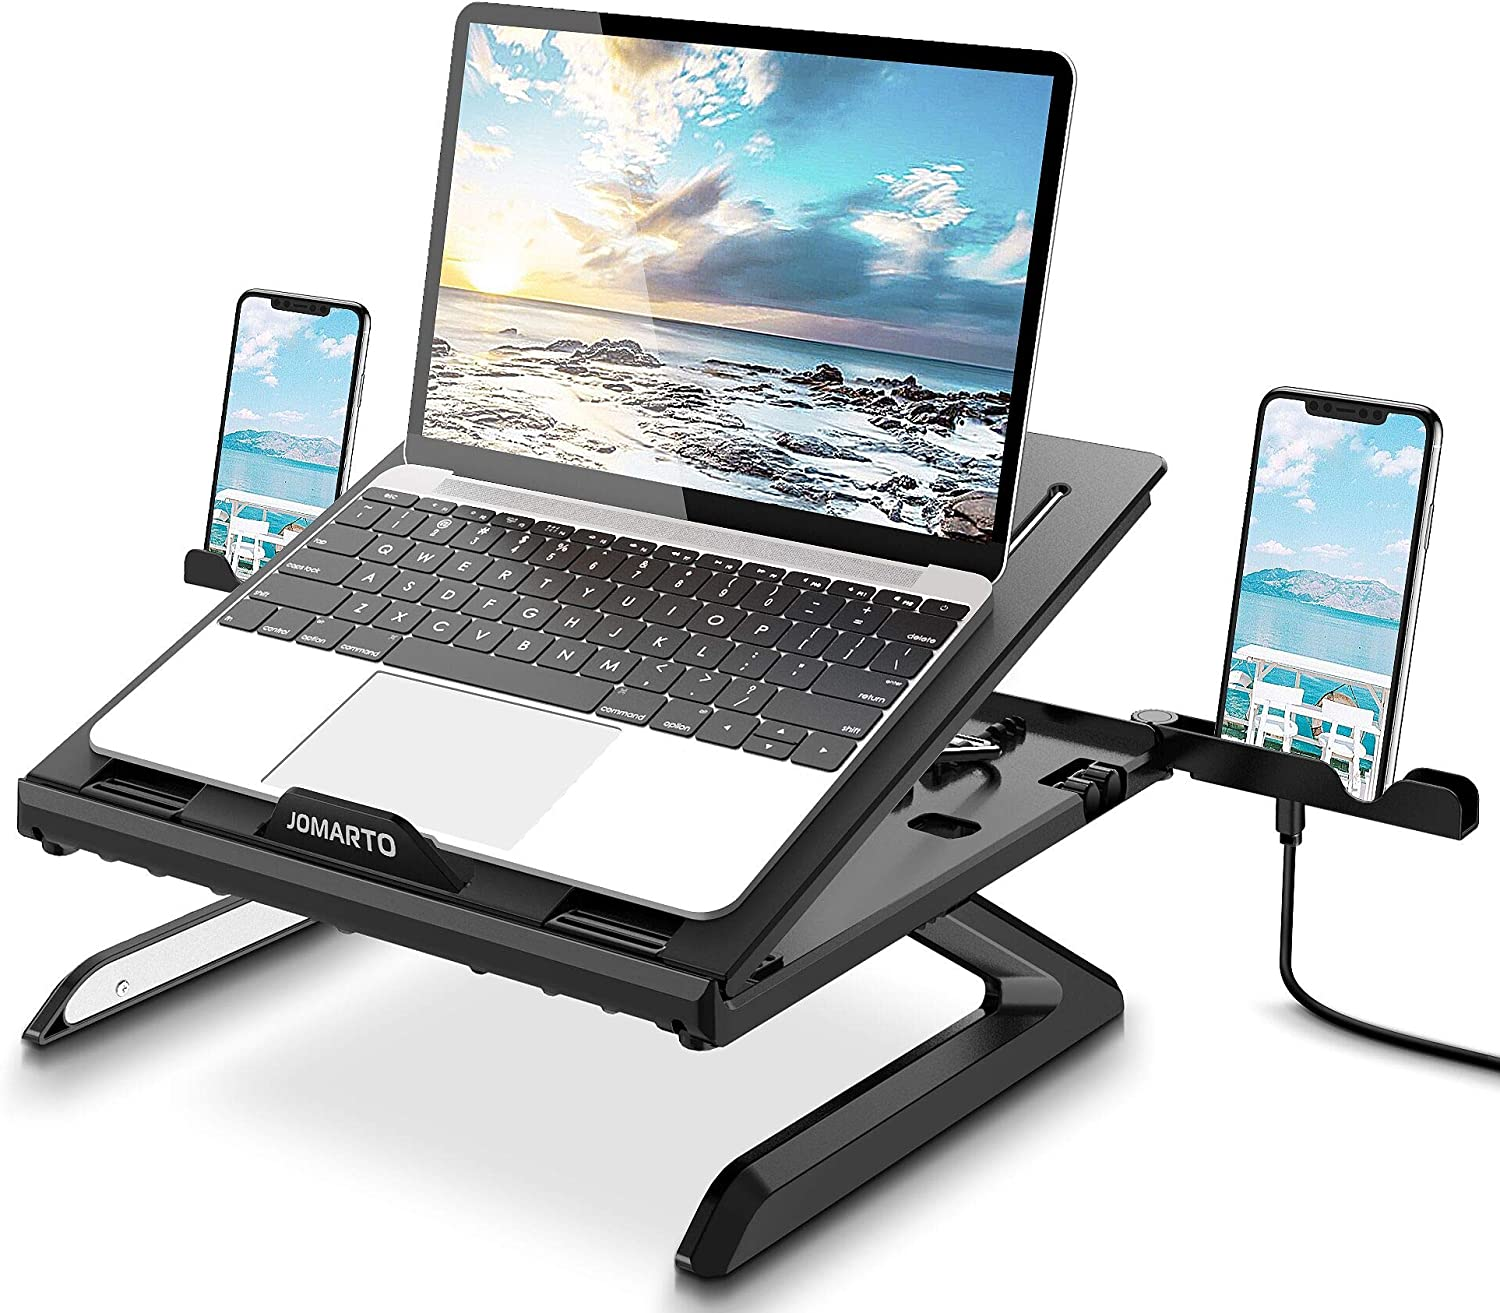 Laptop Stand Ergonomic Keyboard Tray Computer Holder with Heat-Vent to Elevate and Adjustable Laptop.JOMARTO Computer Holder Compatible with Mac-Book Computer,Tablet(Black)